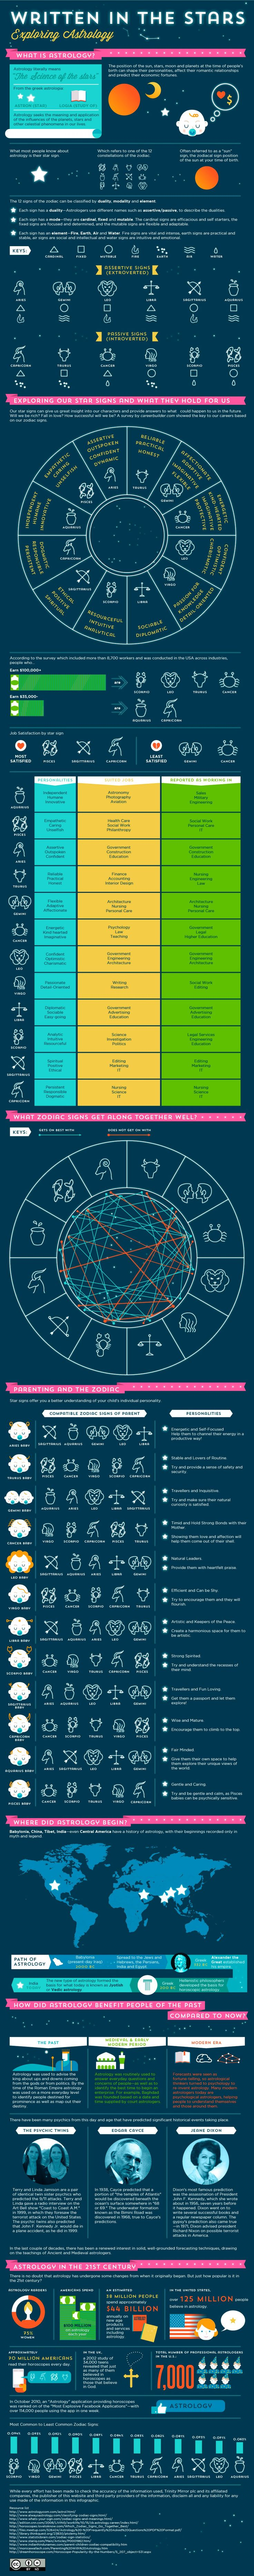 """Nice #infographic here http://thumbnails.visually.netdna-cdn.com/written-in-the-stars-exploring-astrology_5174fd7861d50_w1500.jpg on Astrology, """"The Science of the Stars"""""""